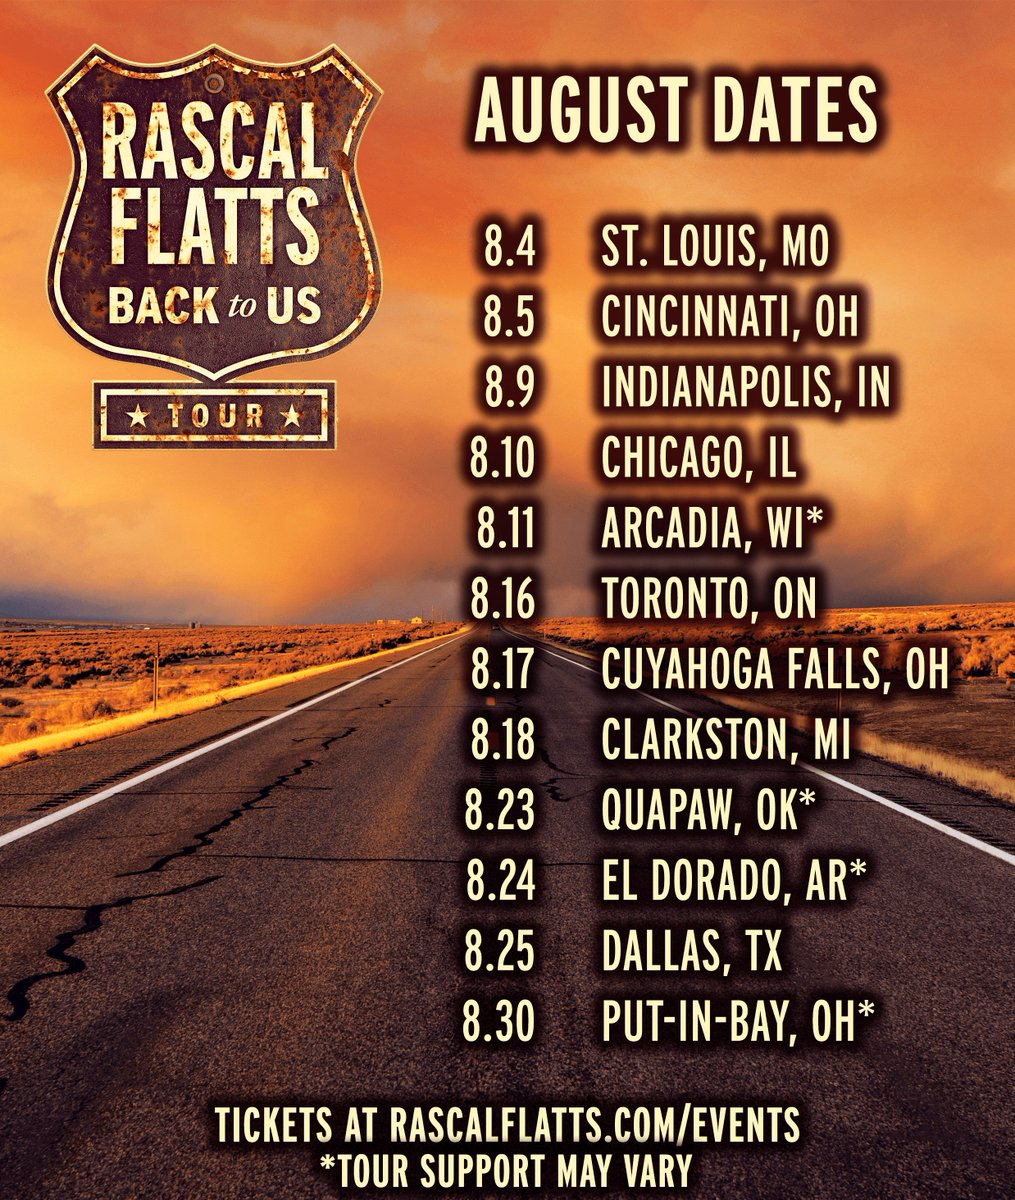 Tomorrow is a new month... But we are still on the same tour! Where will we see you? #BackToUsTour